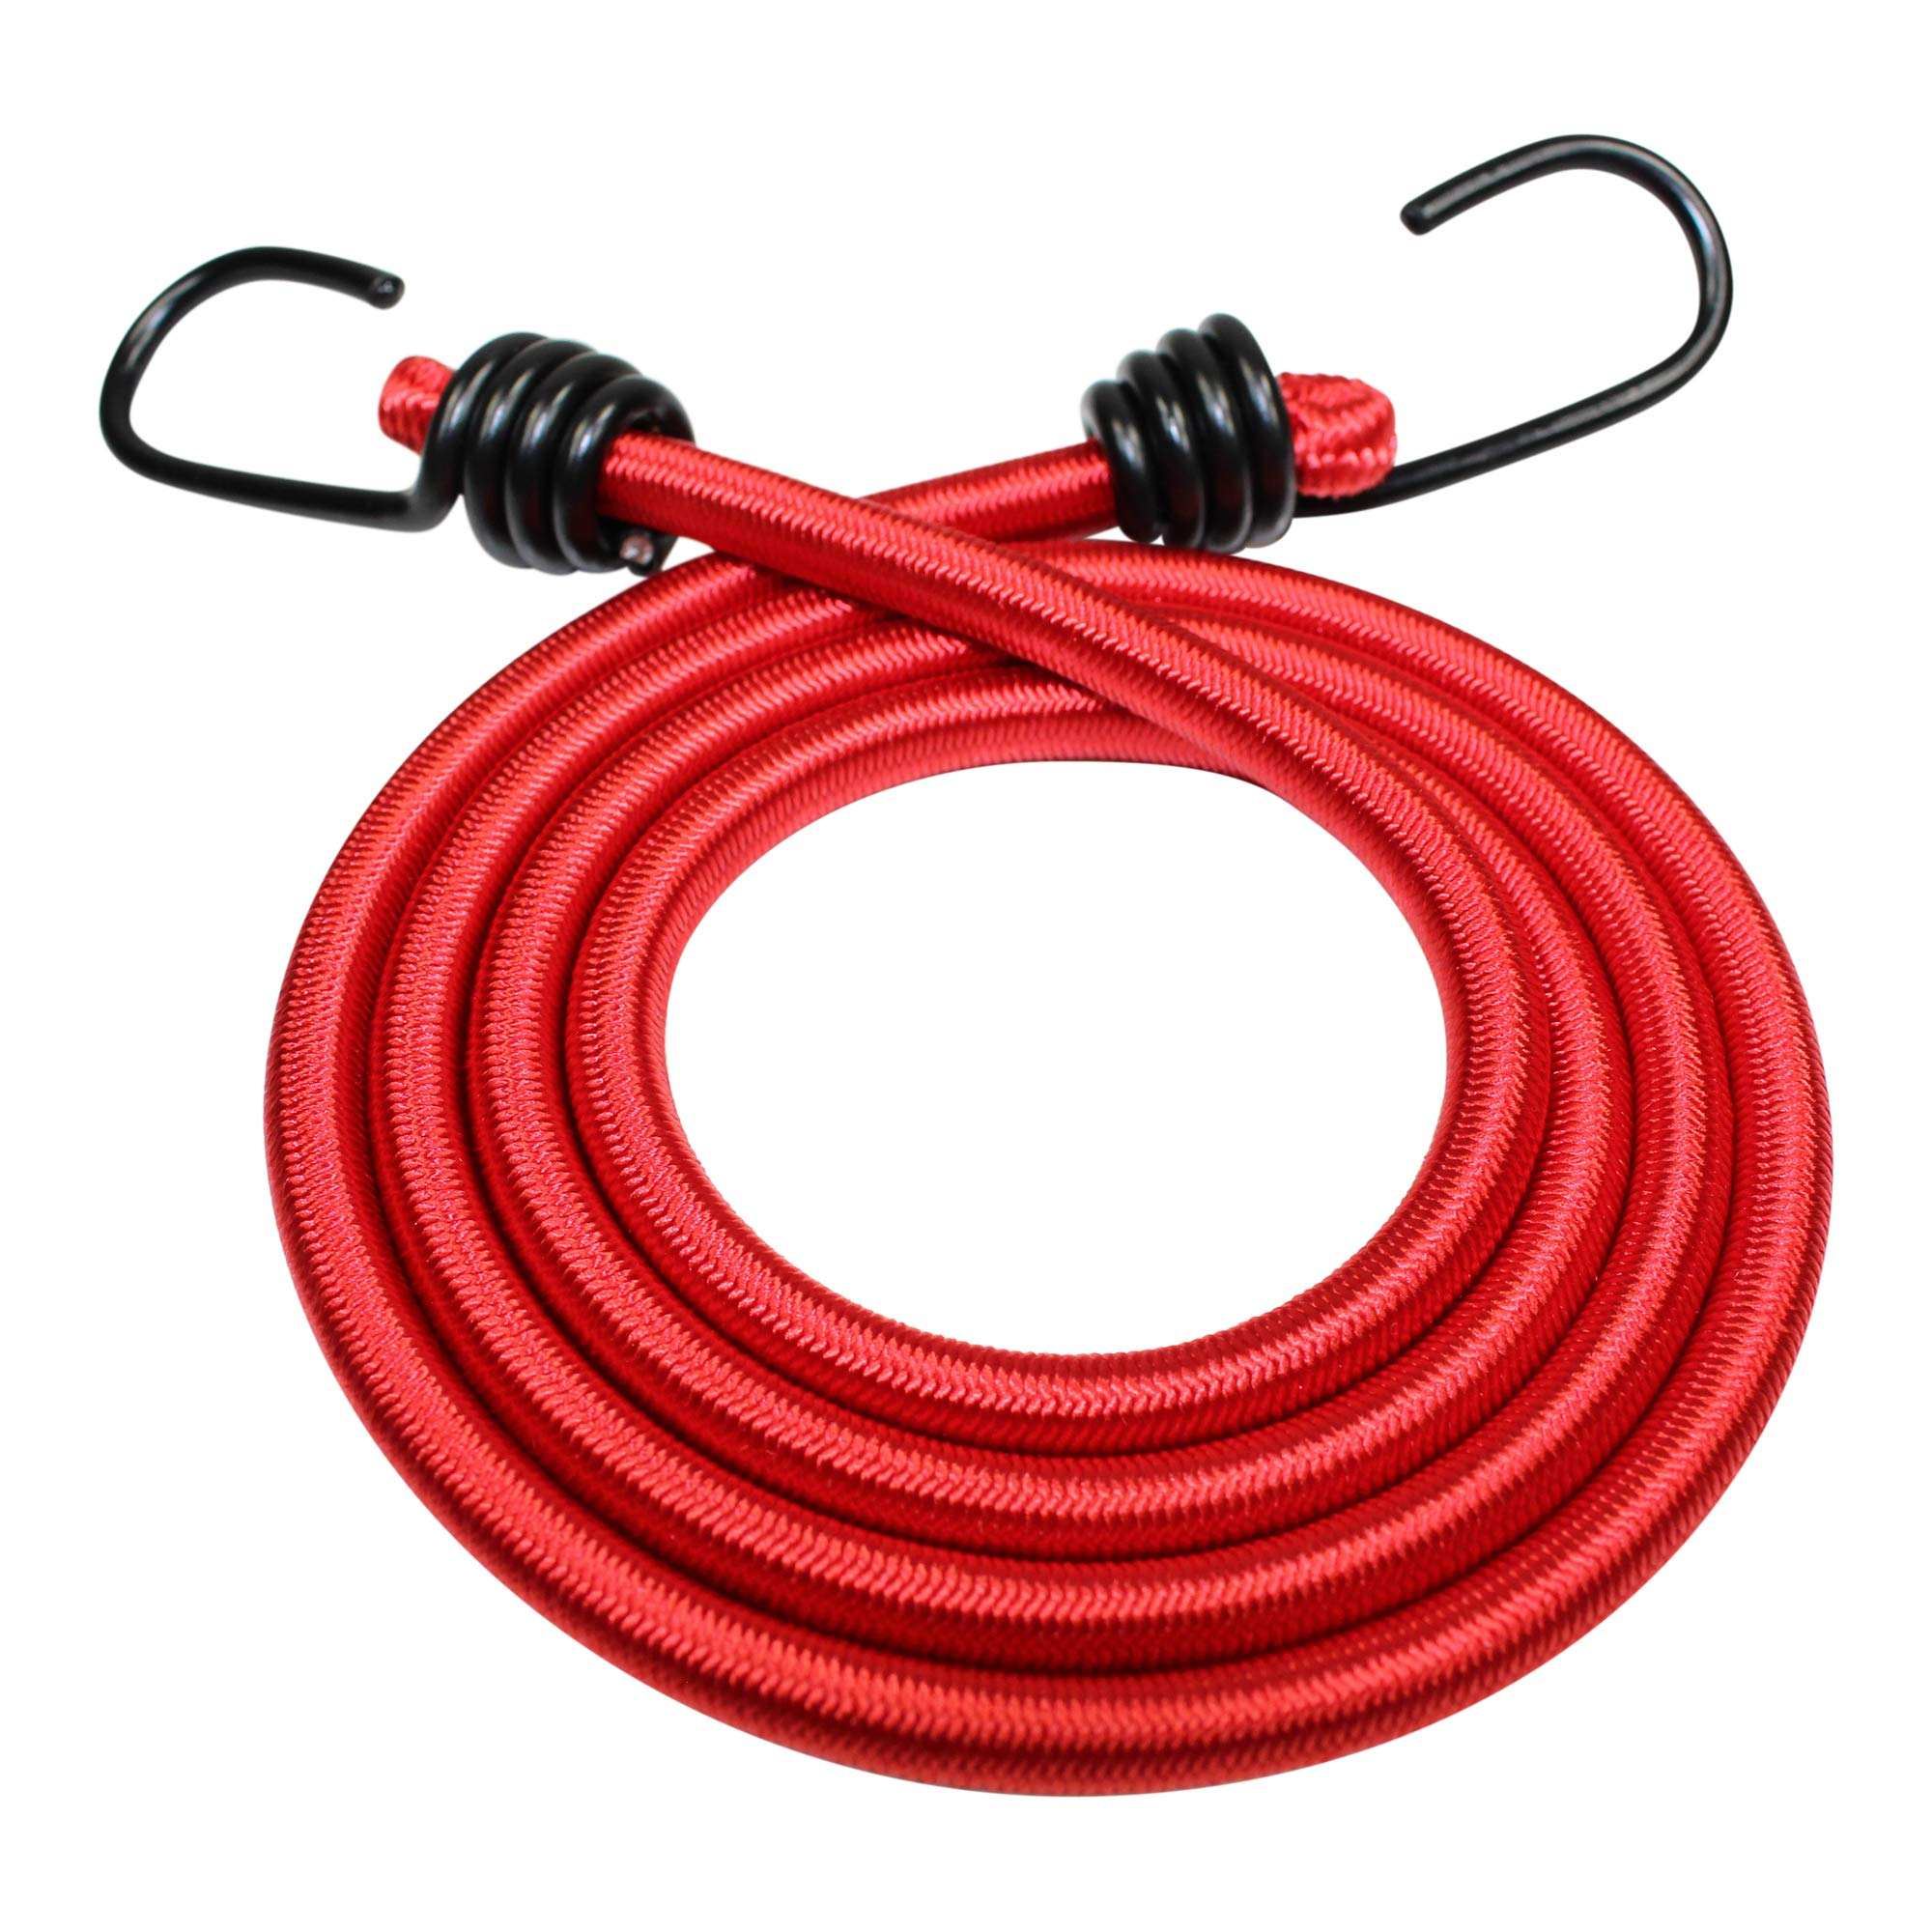 Bungee Cord with Hooks (3/8 in 4-Pack) - SGT KNOTS - Marine Grade Bungee Cords with 2 Hooks - Heavy Duty Bungie - Bunji Cord Straps - Bungees for Bikes, Tie Downs, Camping, Cars (24 in - Red) by SGT KNOTS